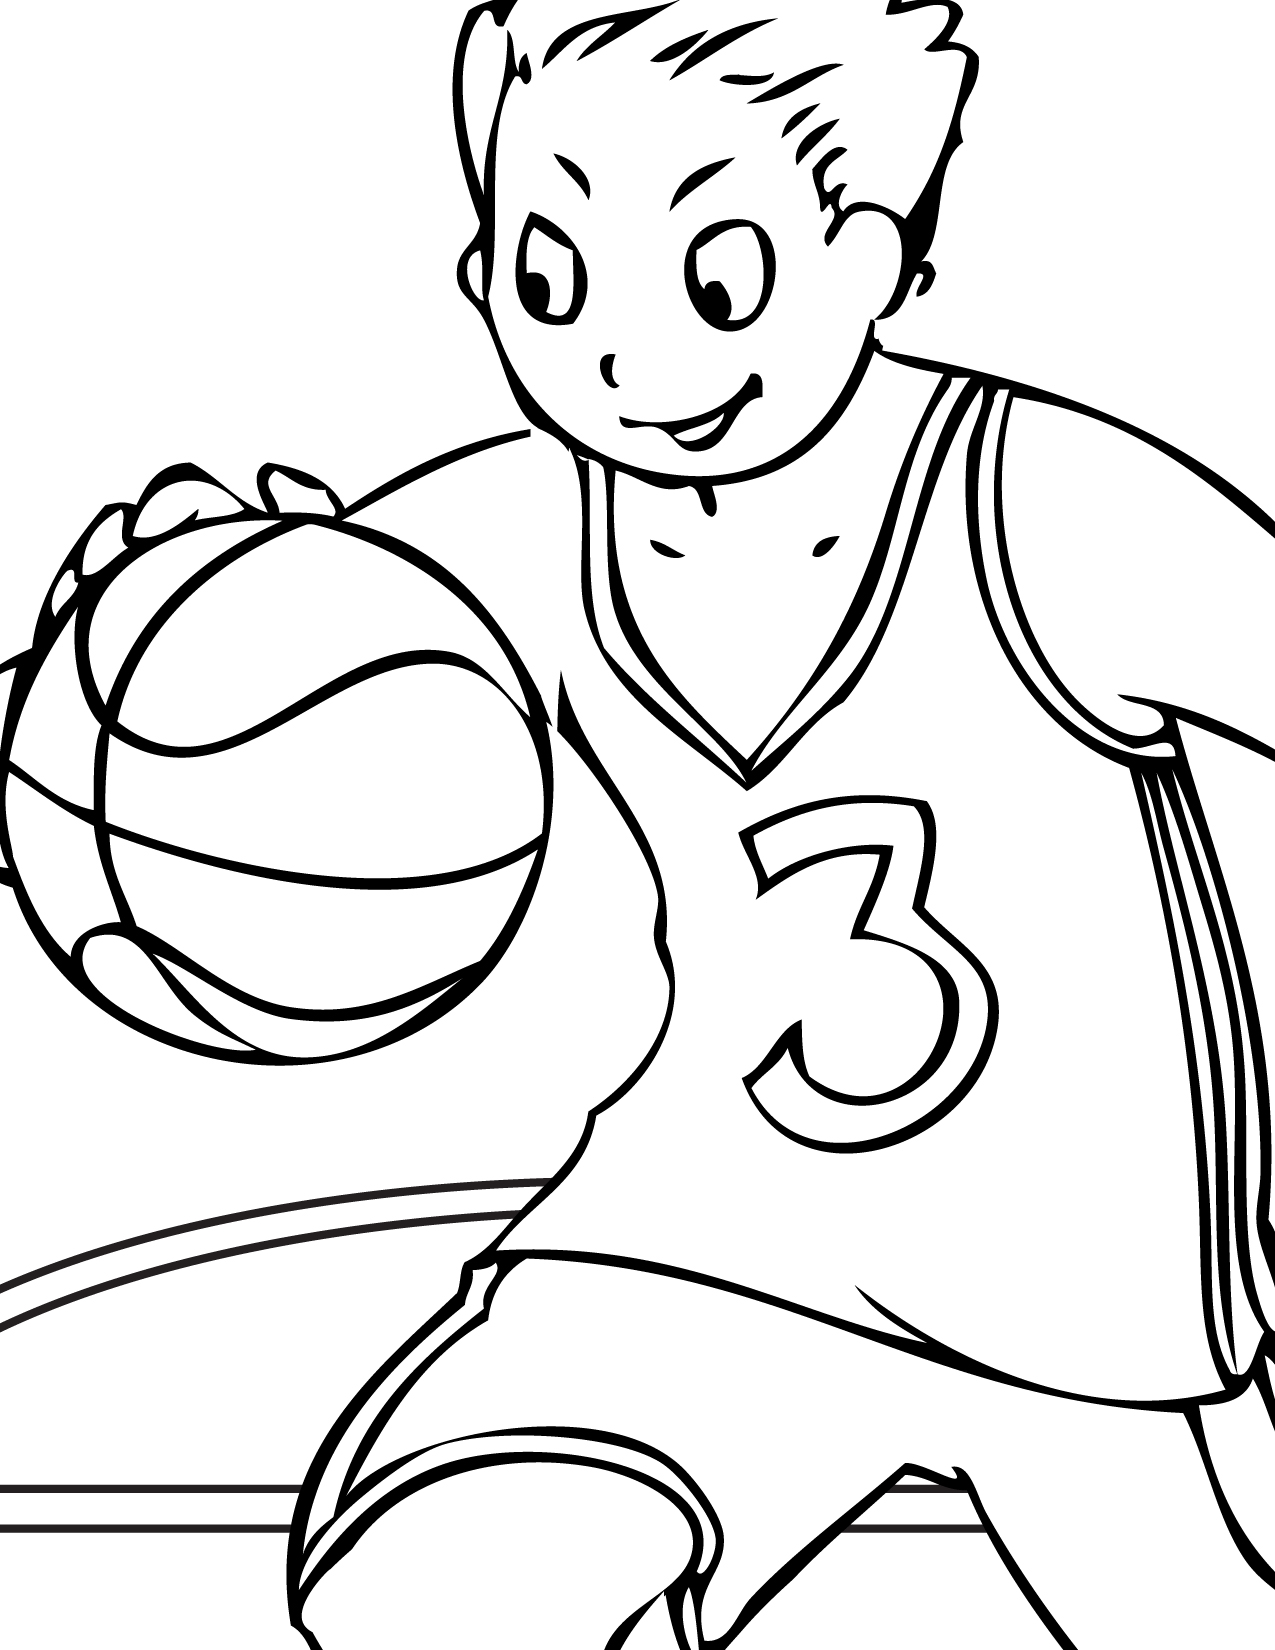 1275x1650 Sensational Design Ideas Sports Coloring Pages To Print For Kids